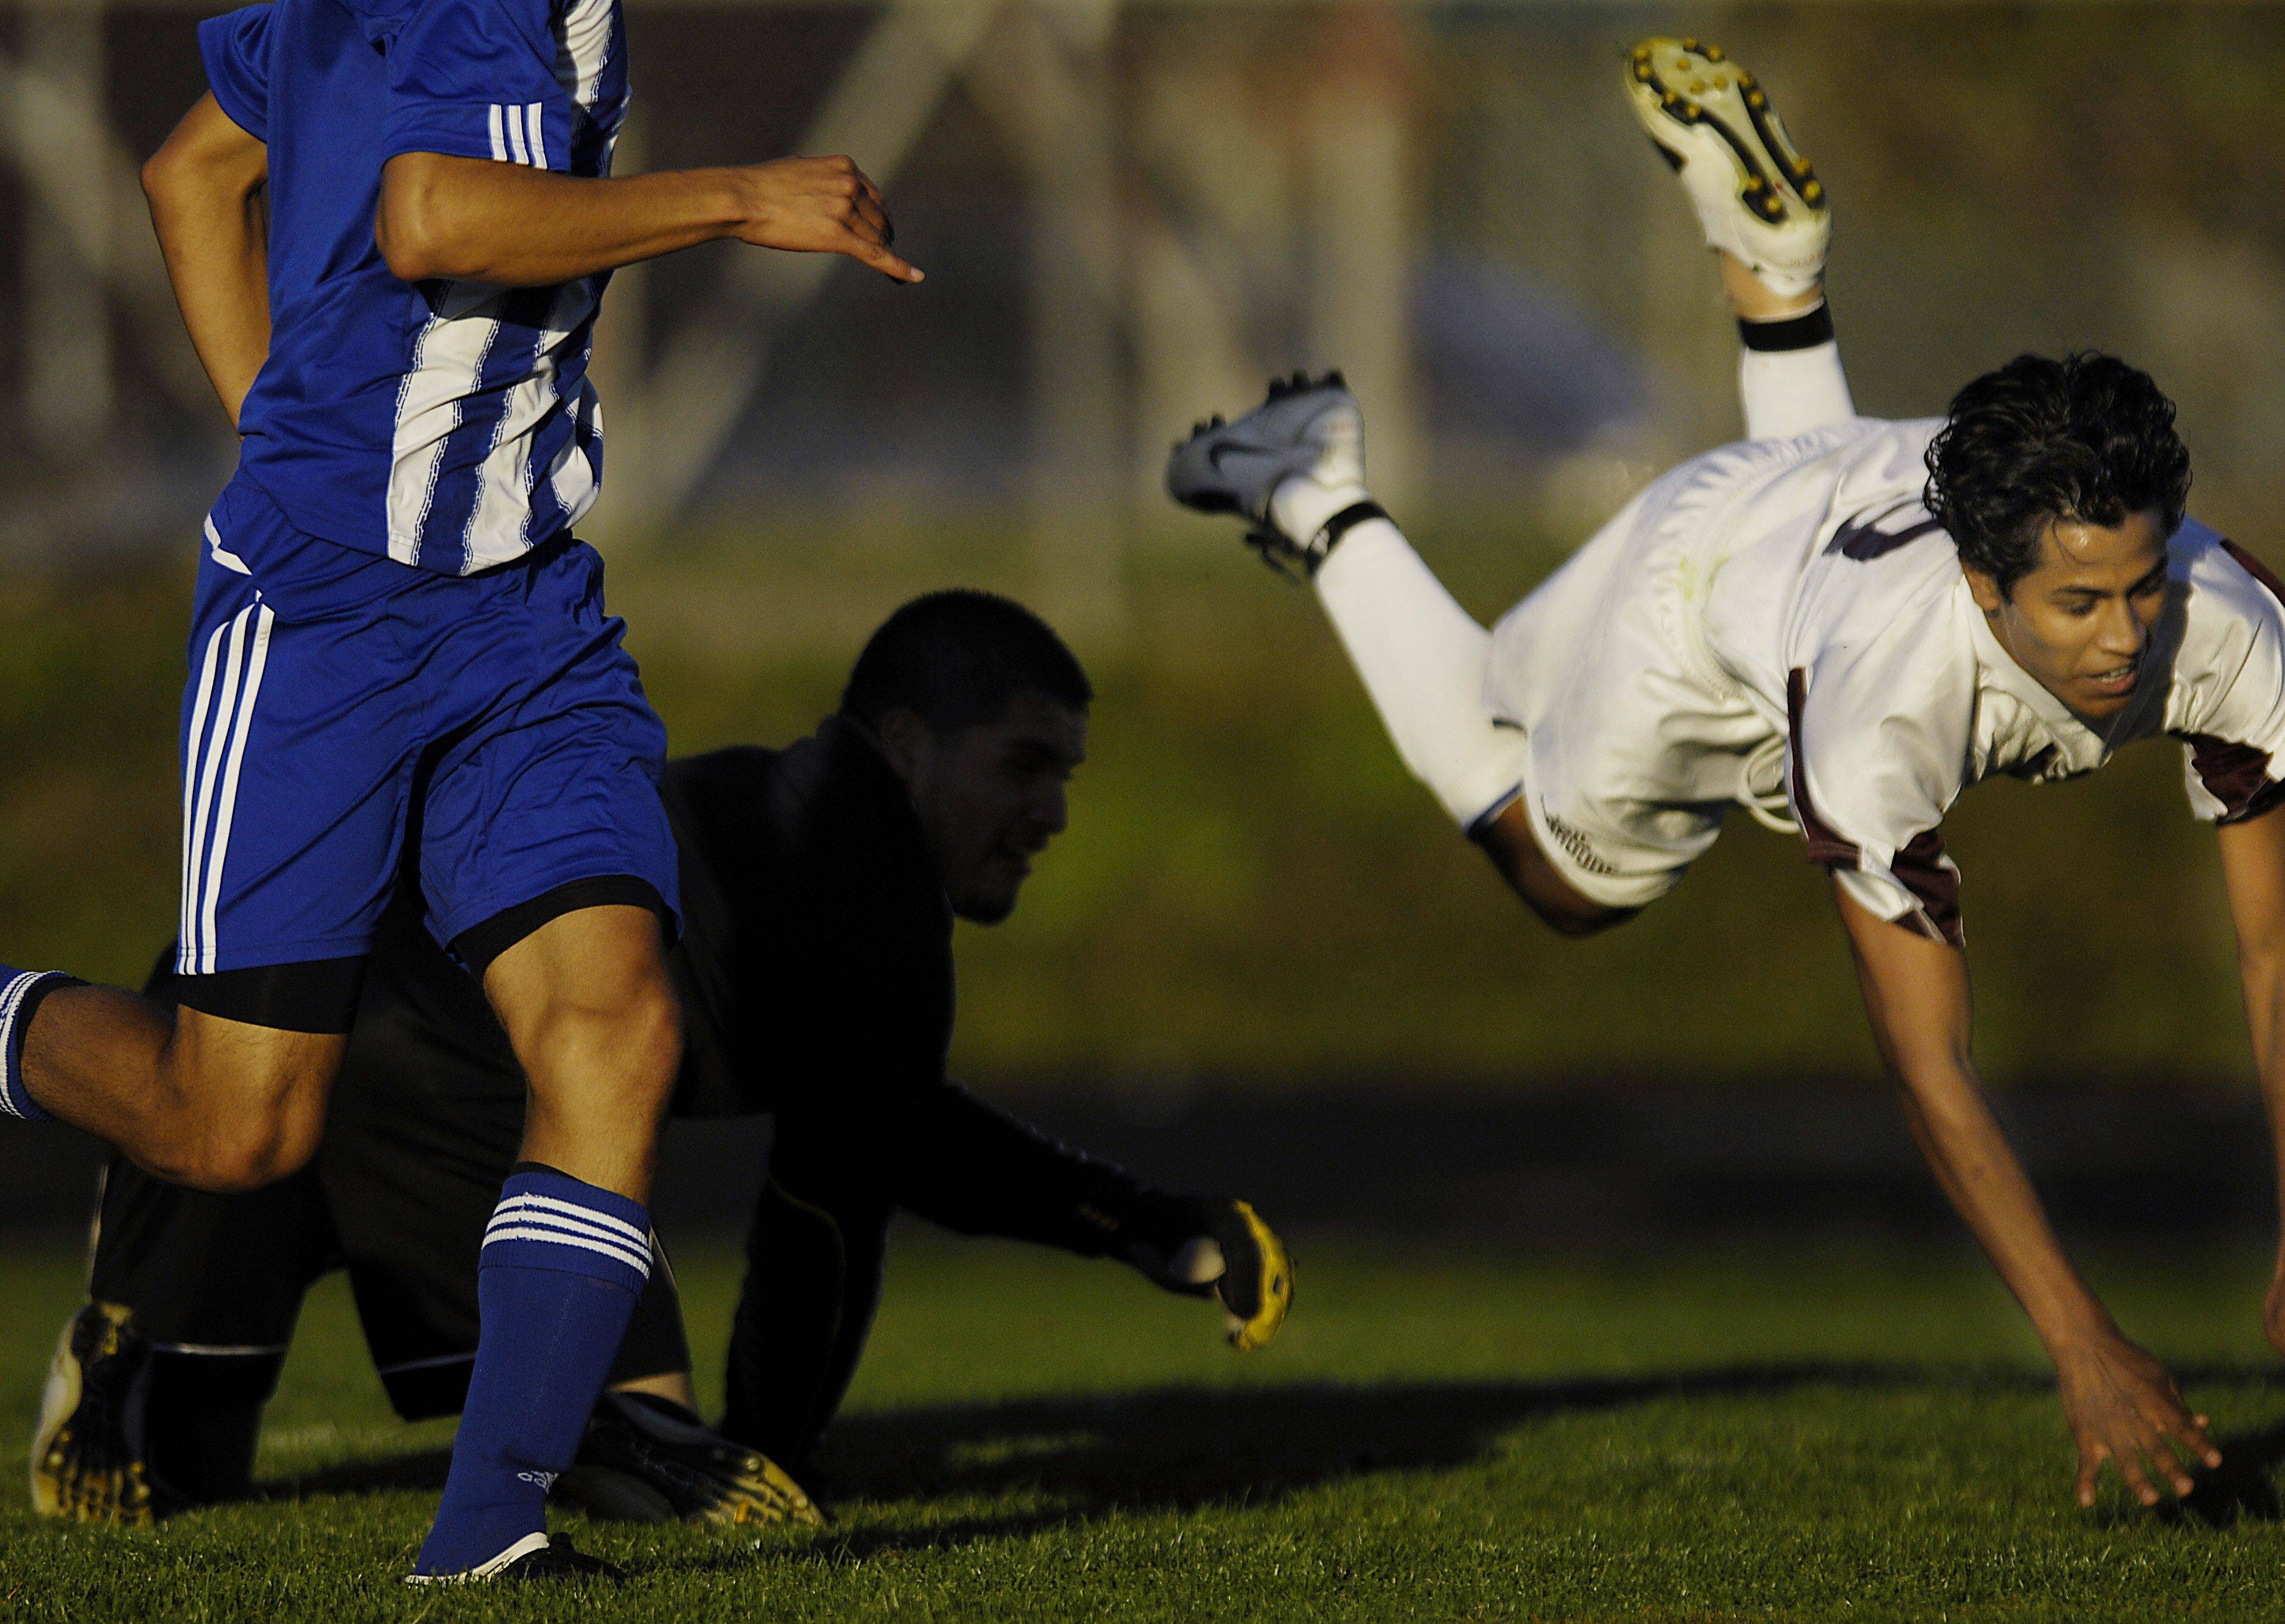 Larkin goalkeeper Santiago Guerrero upends Elgin midfielder Samual Escobar Tuesday as he charged the net late in the game.